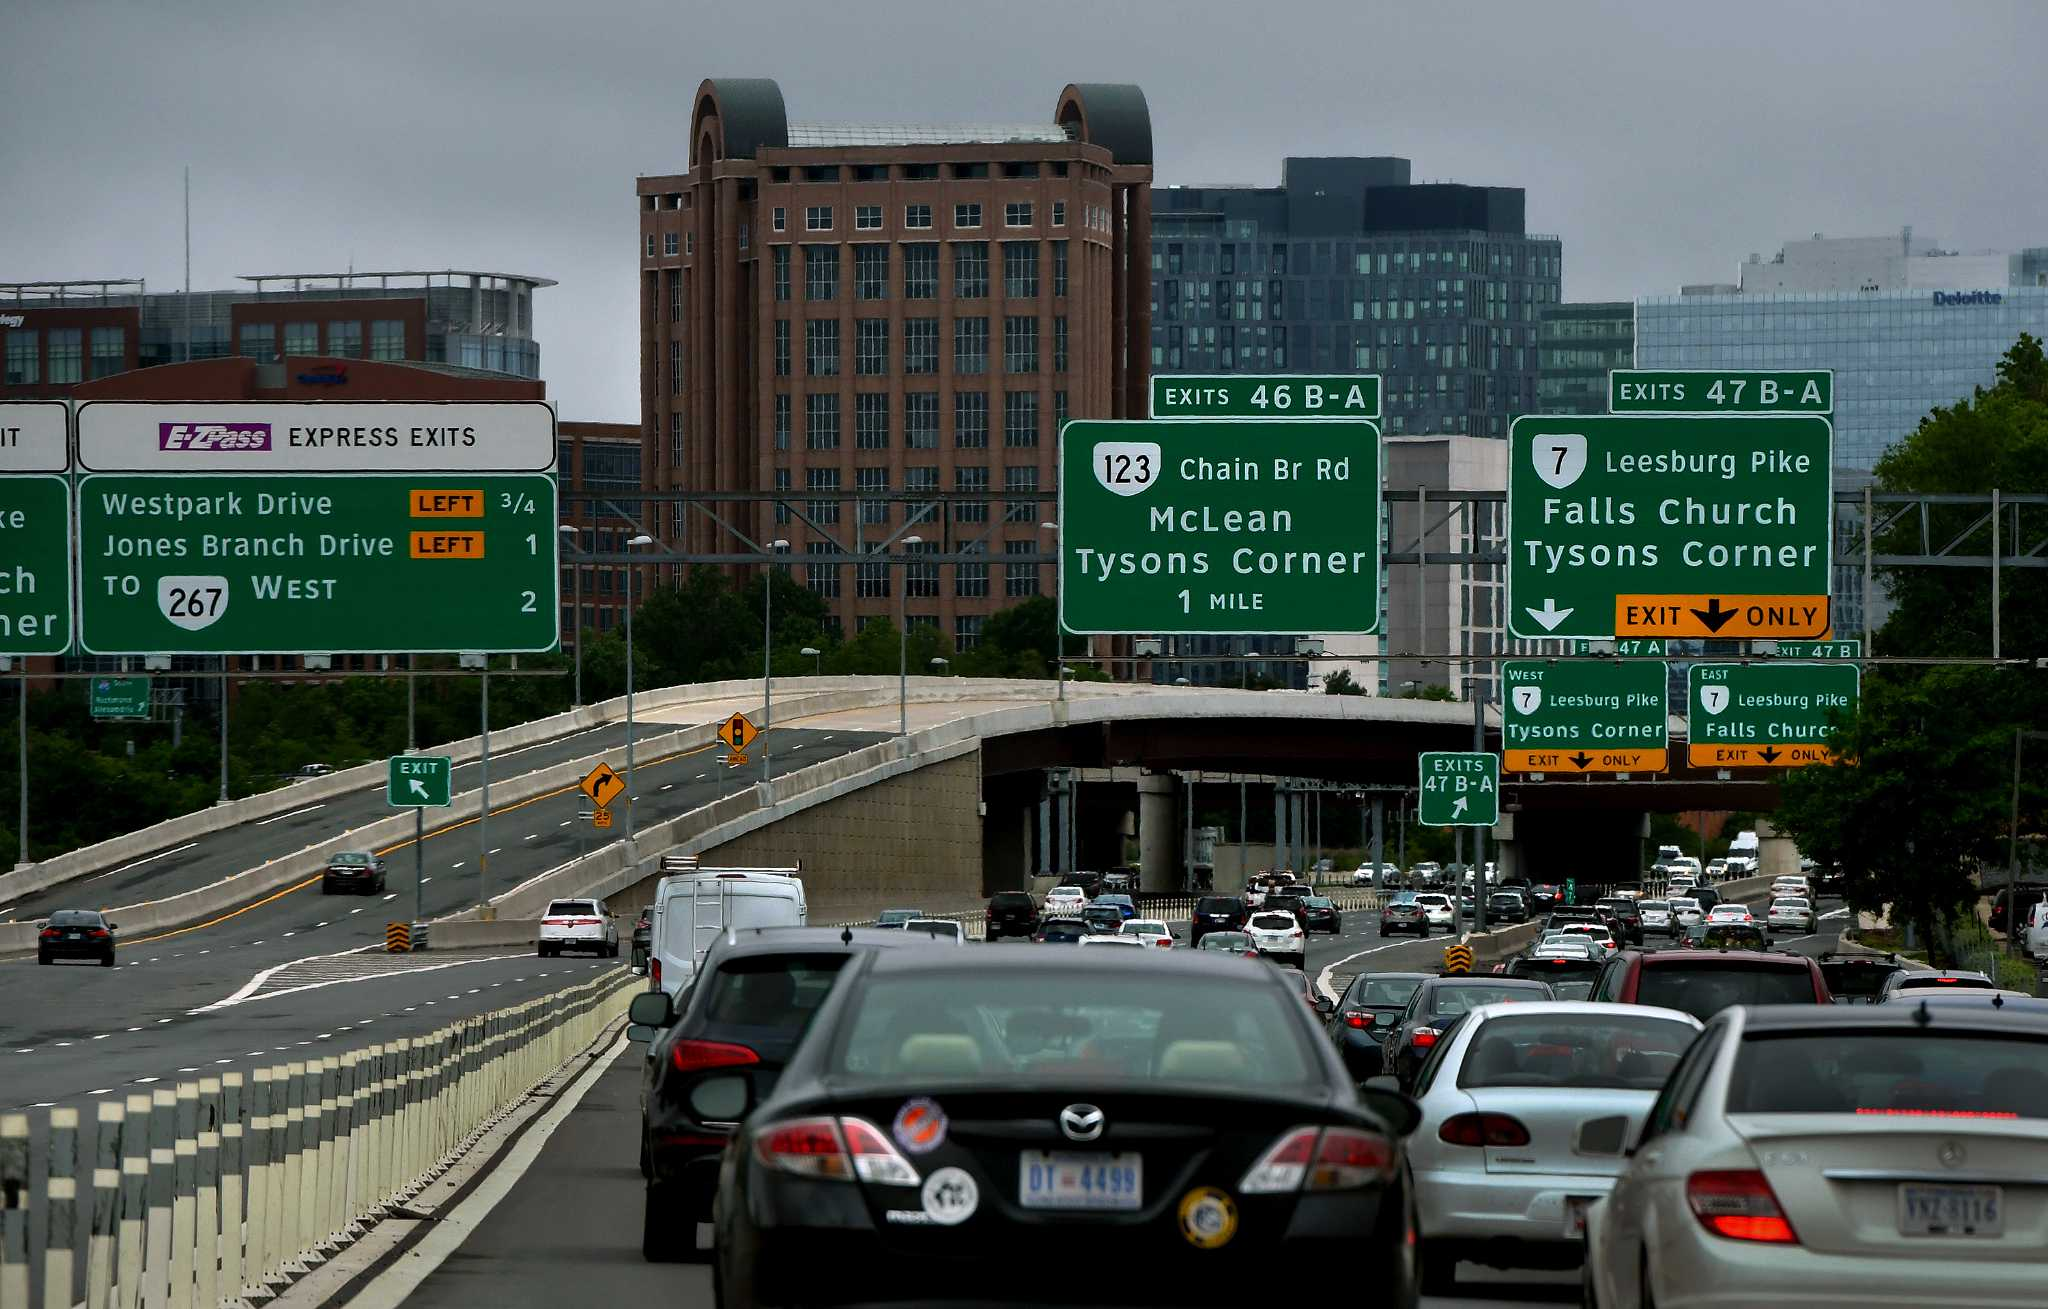 Americans' commutes keep getting longer, according to survey data - SFGate